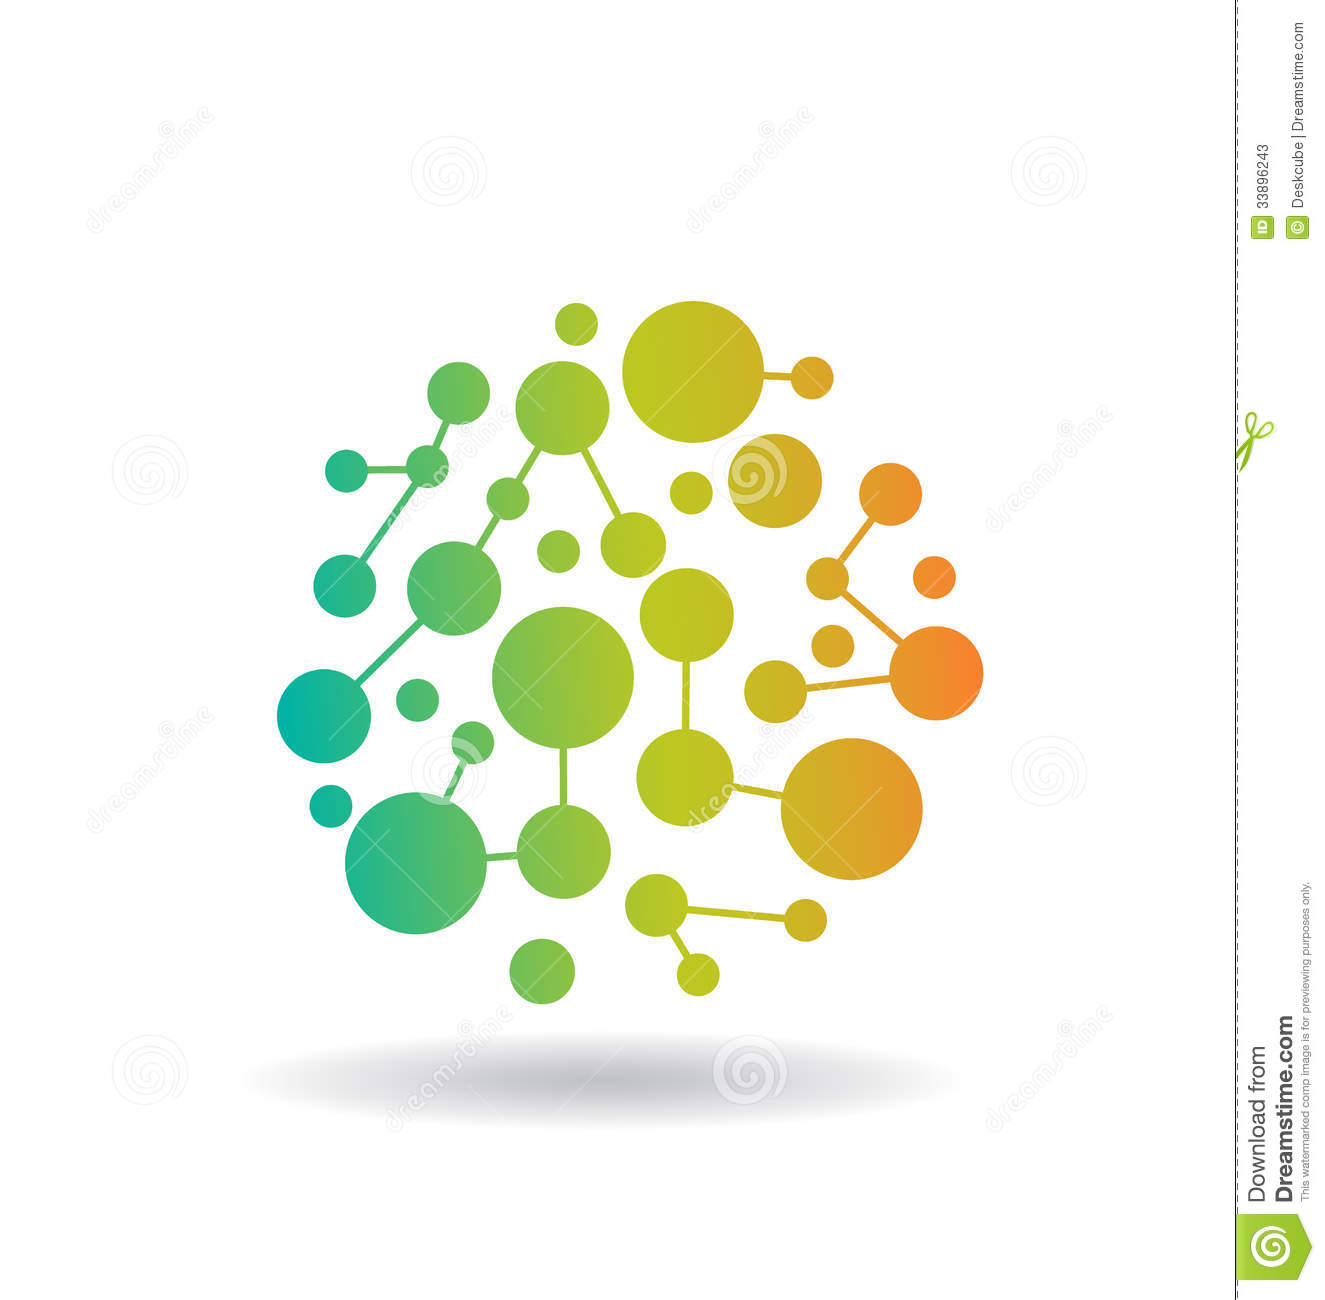 color circles network logo stock vector illustration of flow 33896243